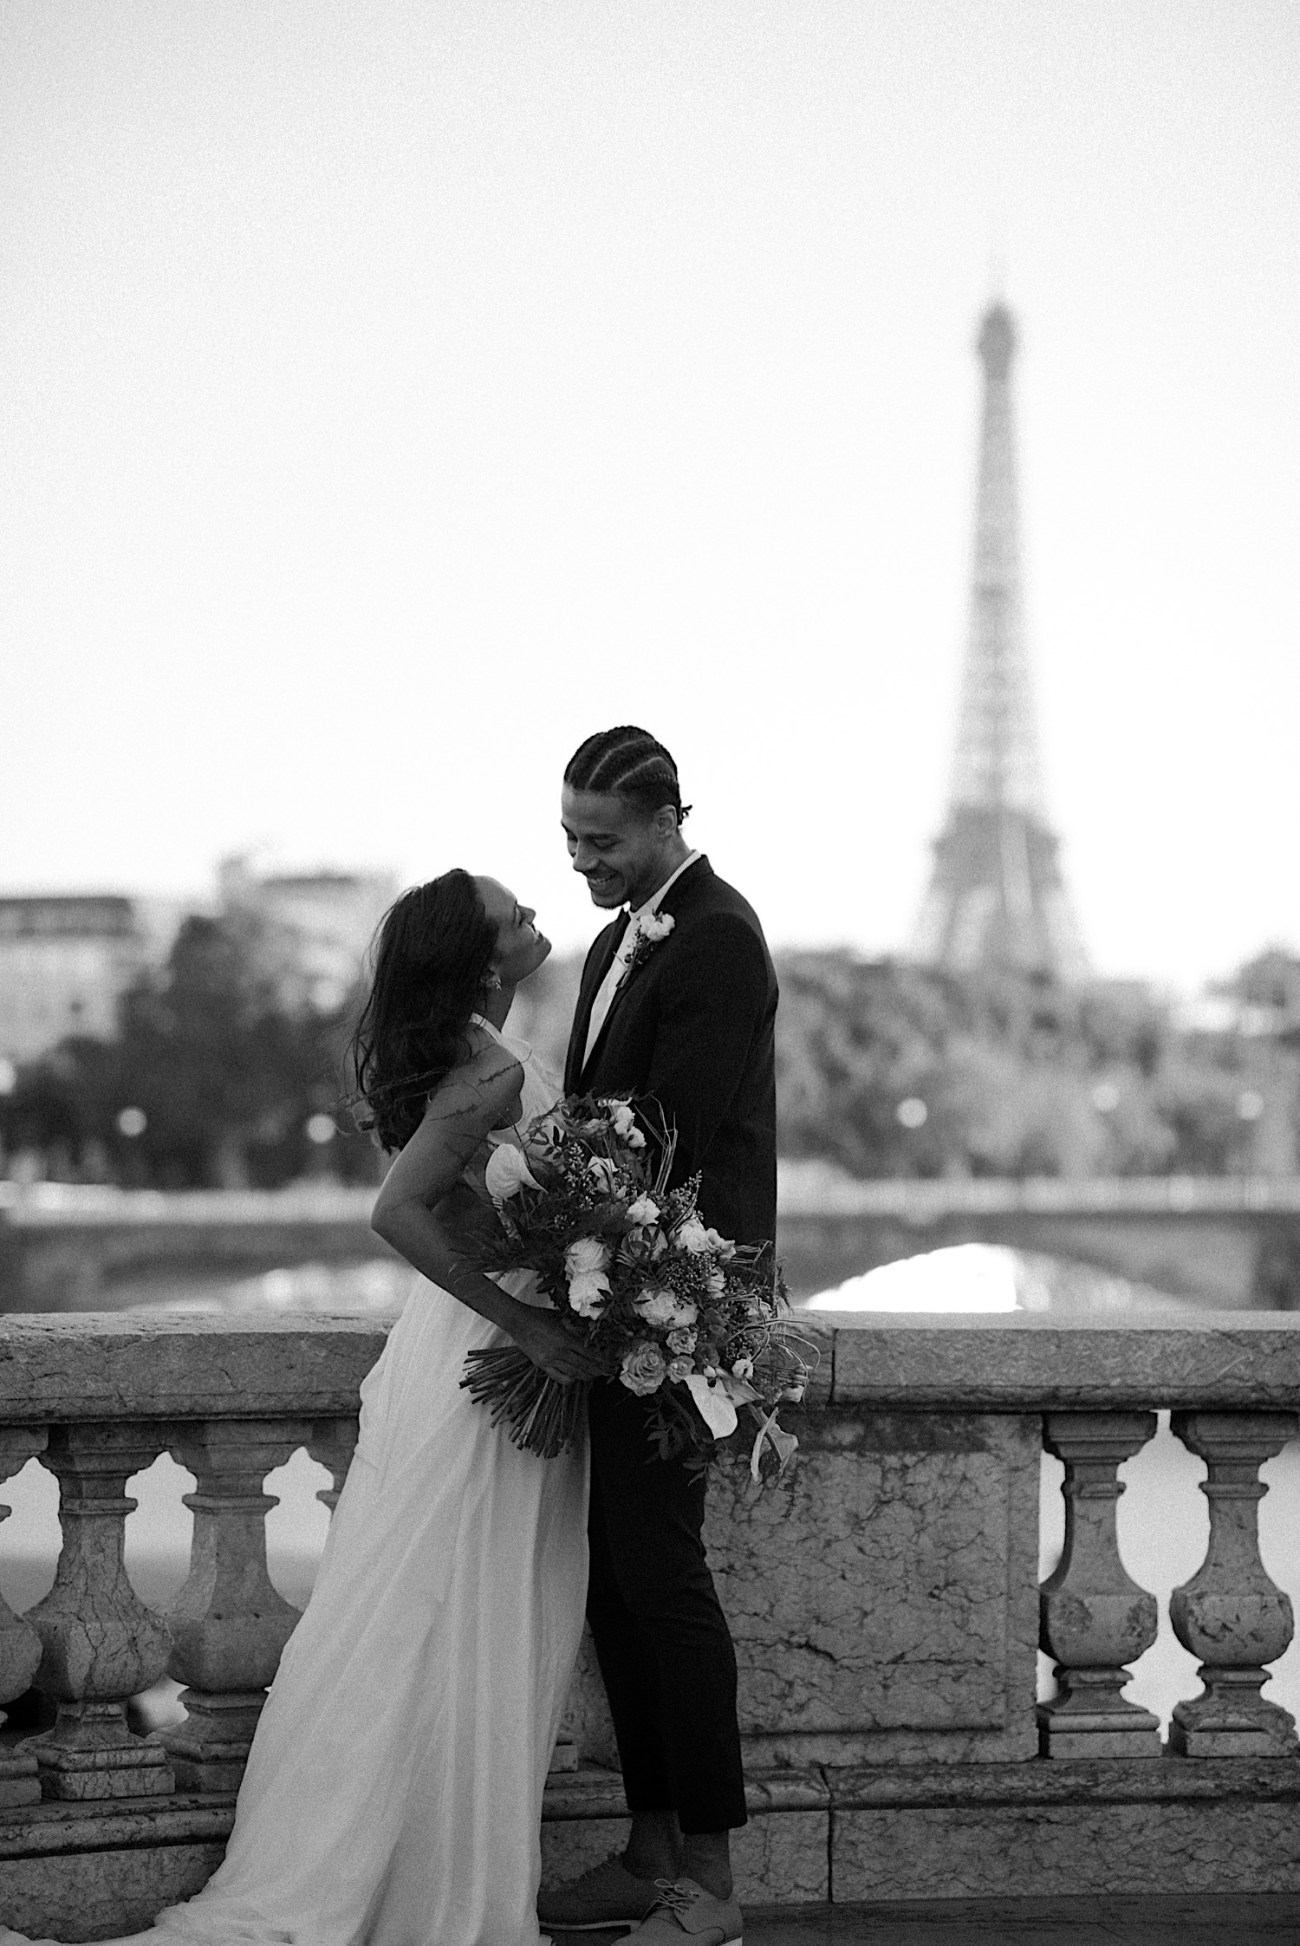 Paris Wedding Photos Paris Wedding Photographer Paris Photographe De Marriage Pont Alexandre Wedding Photos Anais Possamai Photography 20